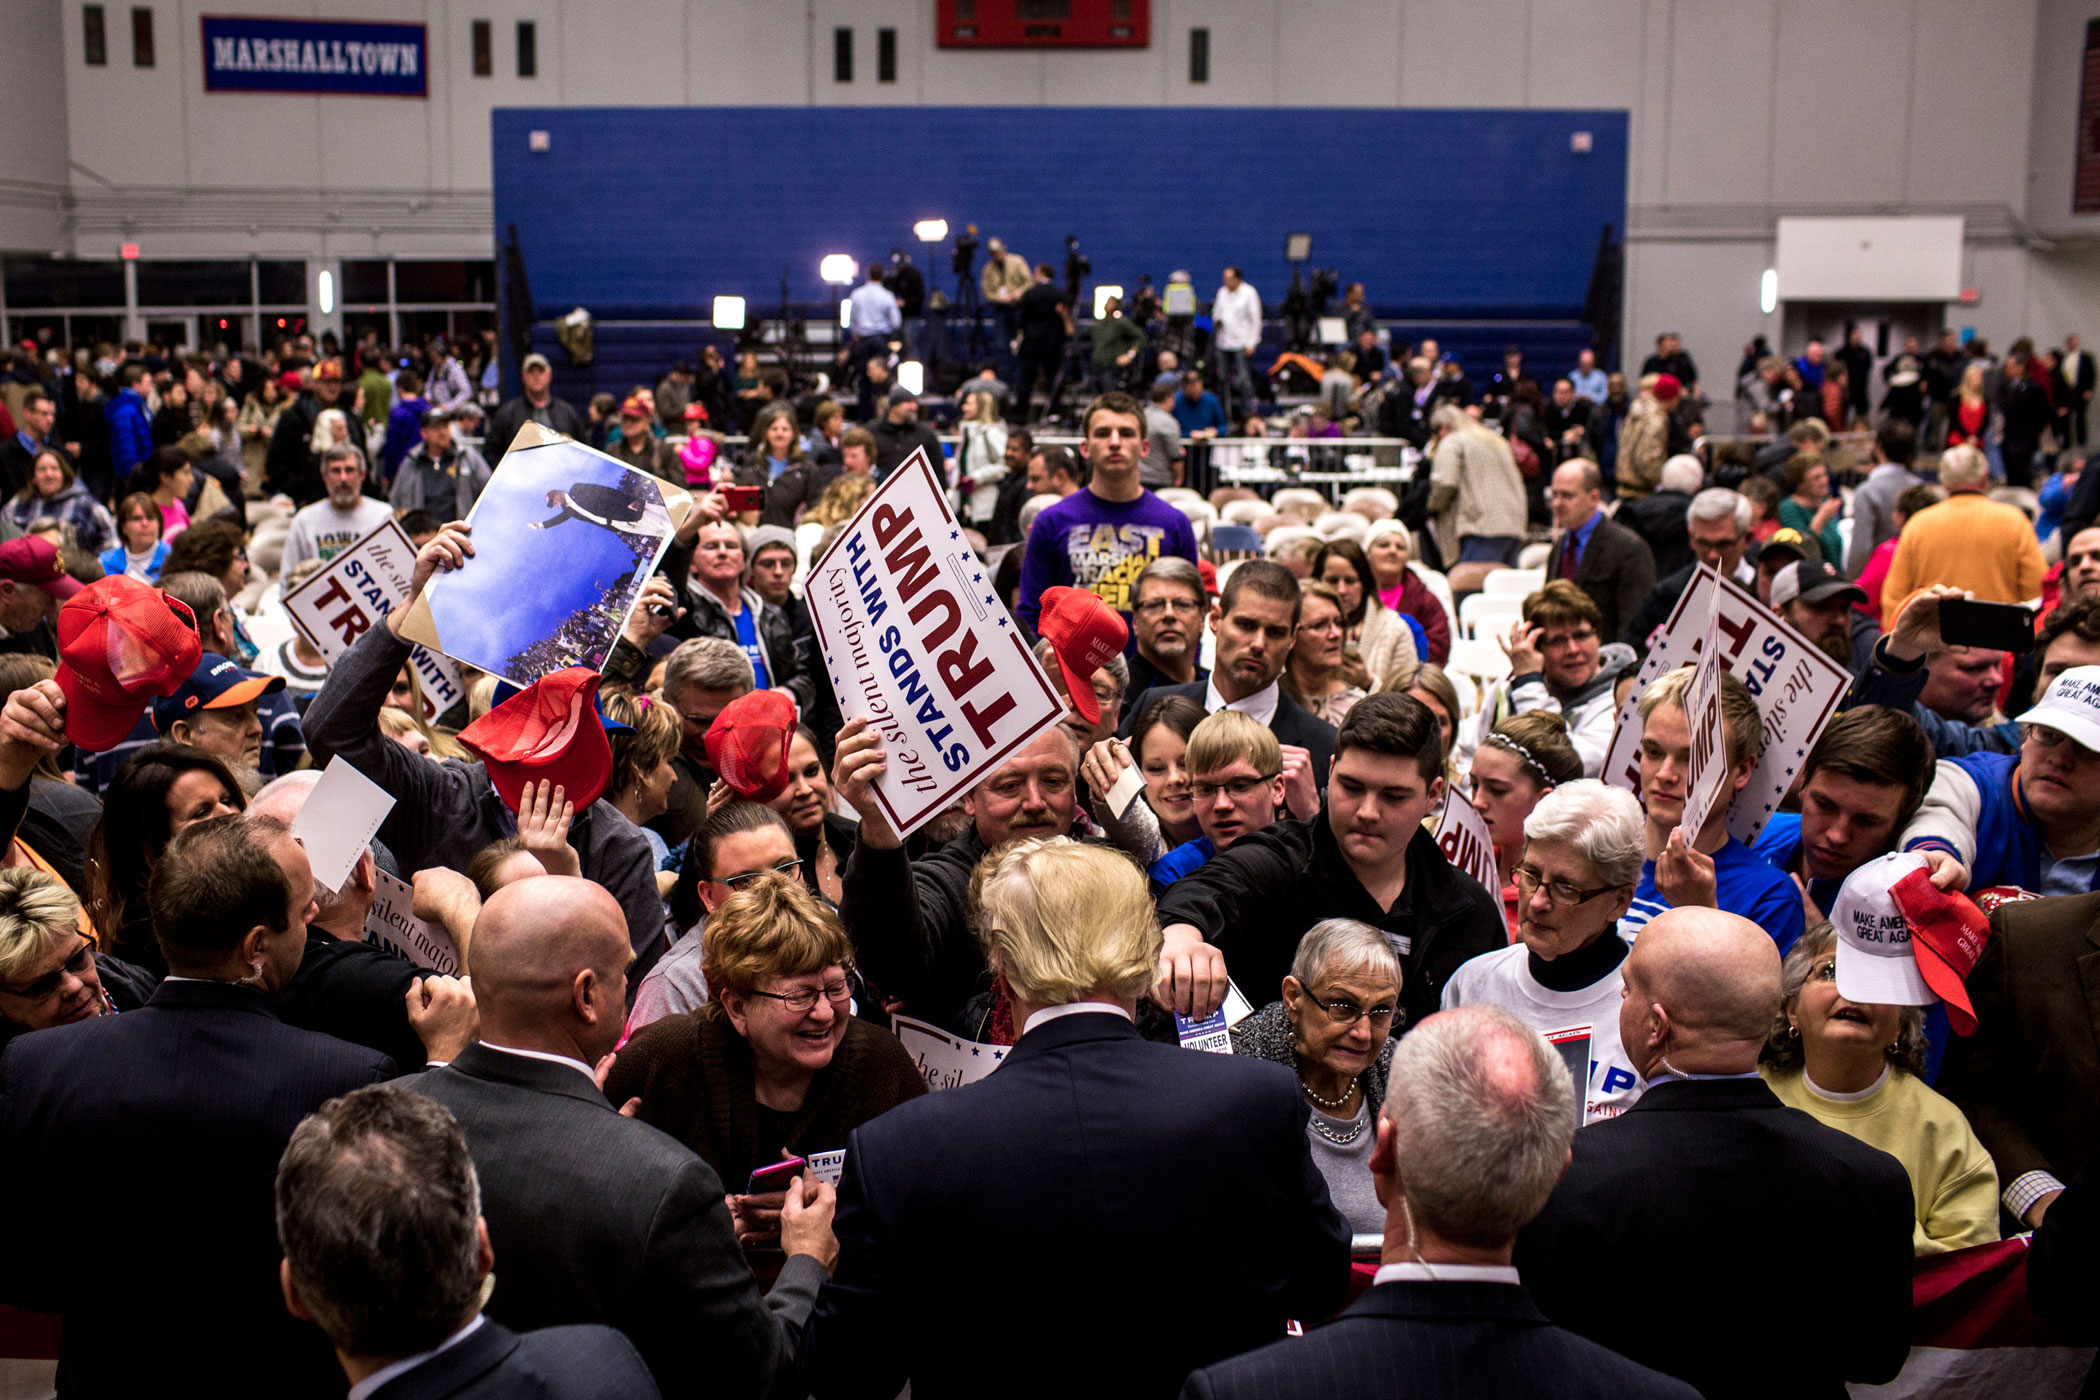 Donald Trump greets supporters at a rally in Des Moines, Iowa, on Jan. 26, 2016.